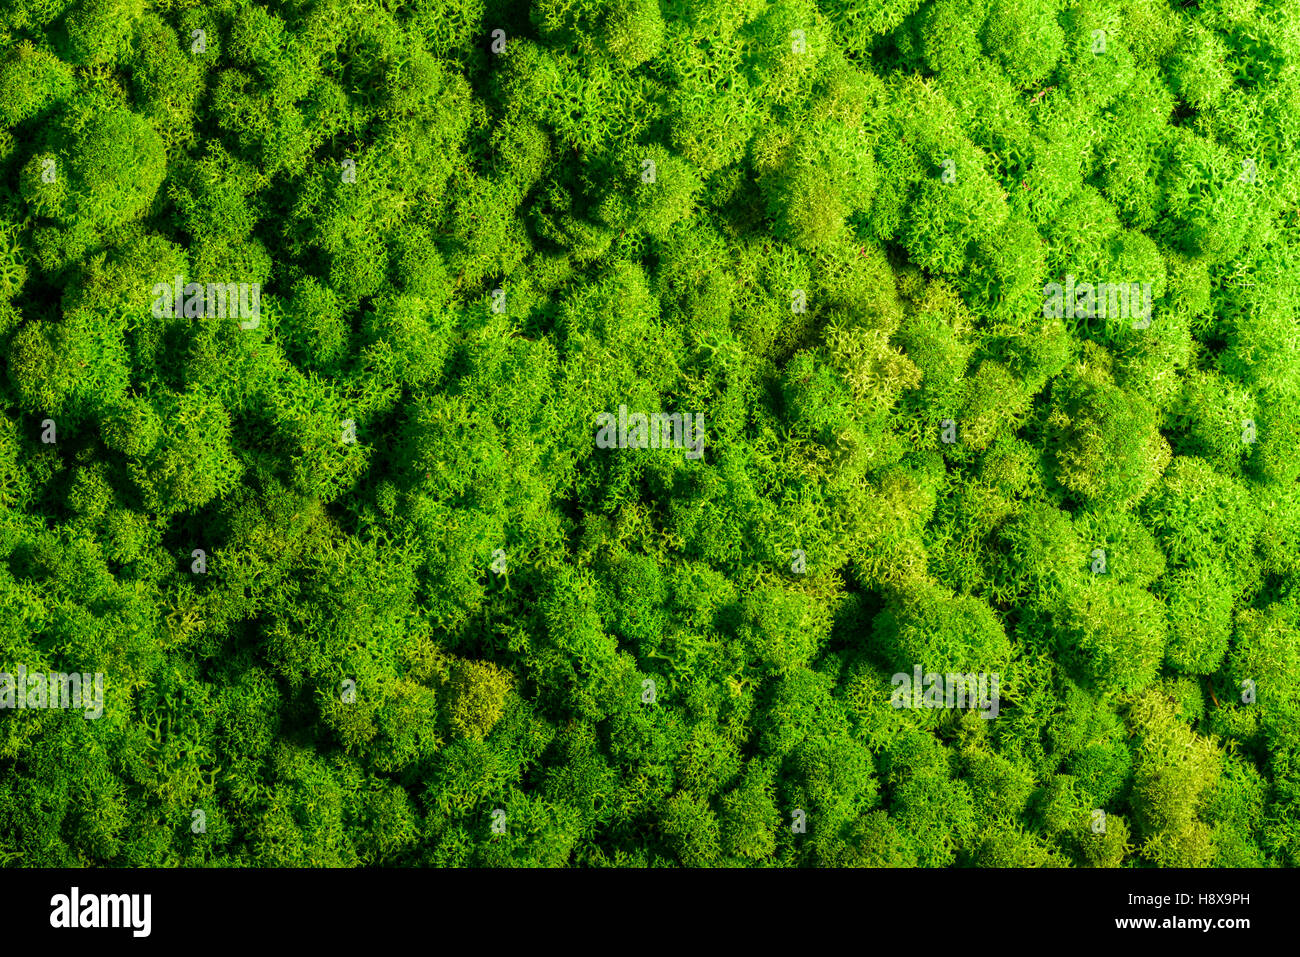 reindeer moss wall green wall decoration made of reindeer lichen stock photo royalty free. Black Bedroom Furniture Sets. Home Design Ideas